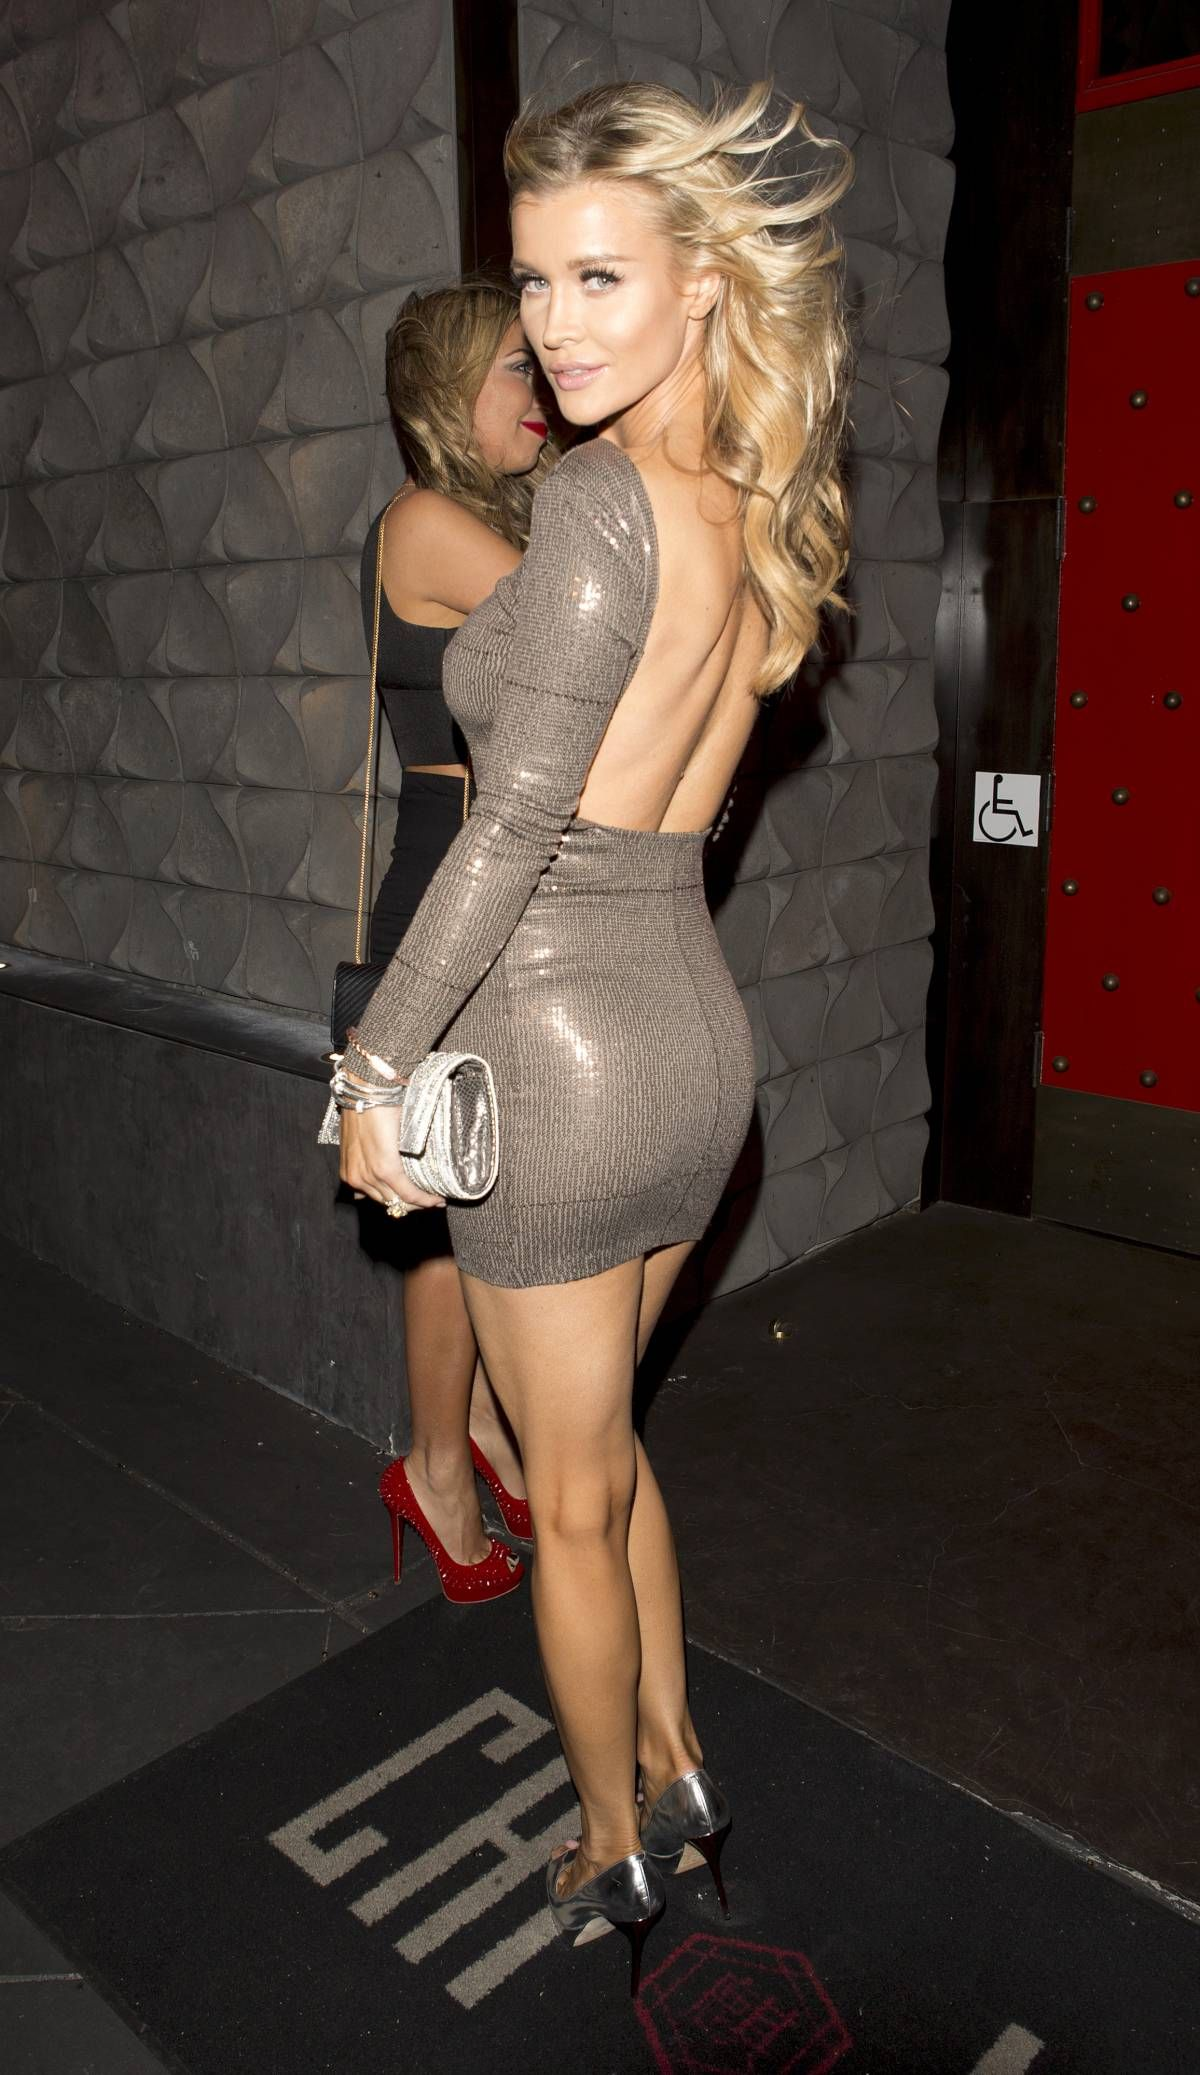 pictures Joanna krupa see through dress to impress